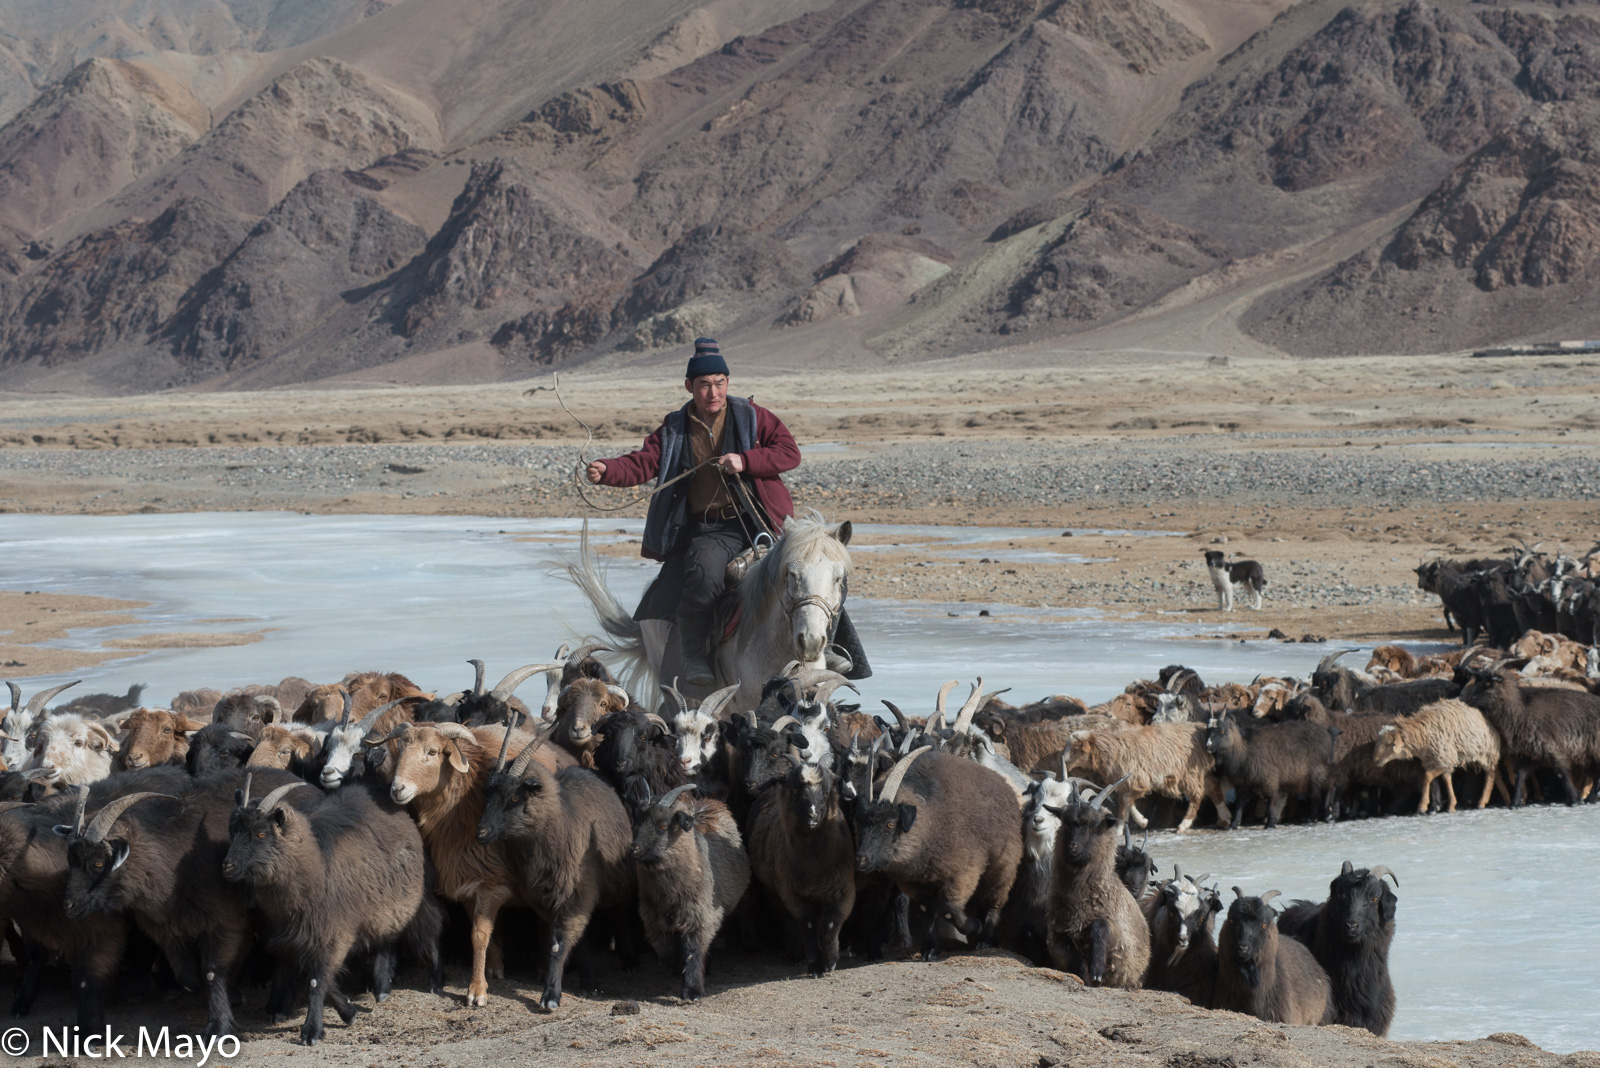 A Kazakh herder on horseback driving sheep and goats across a frozen river during their spring migration in Sagsai sum.